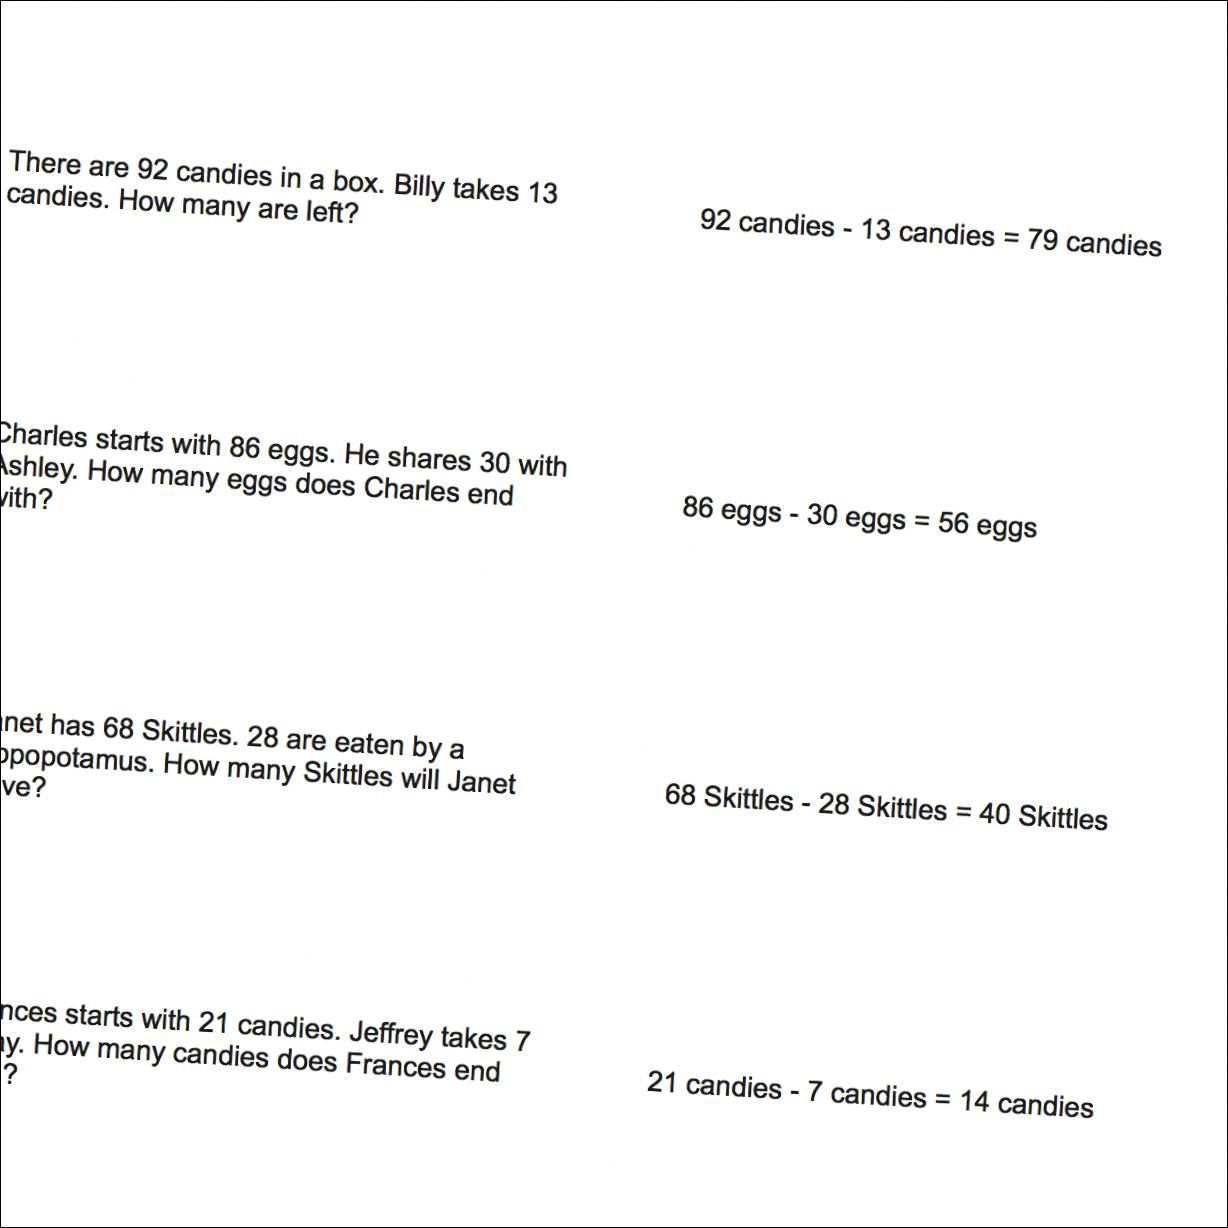 Worksheet Mixed Addition And Subtraction Word Problems word problems mixed addition and subtraction mel problems